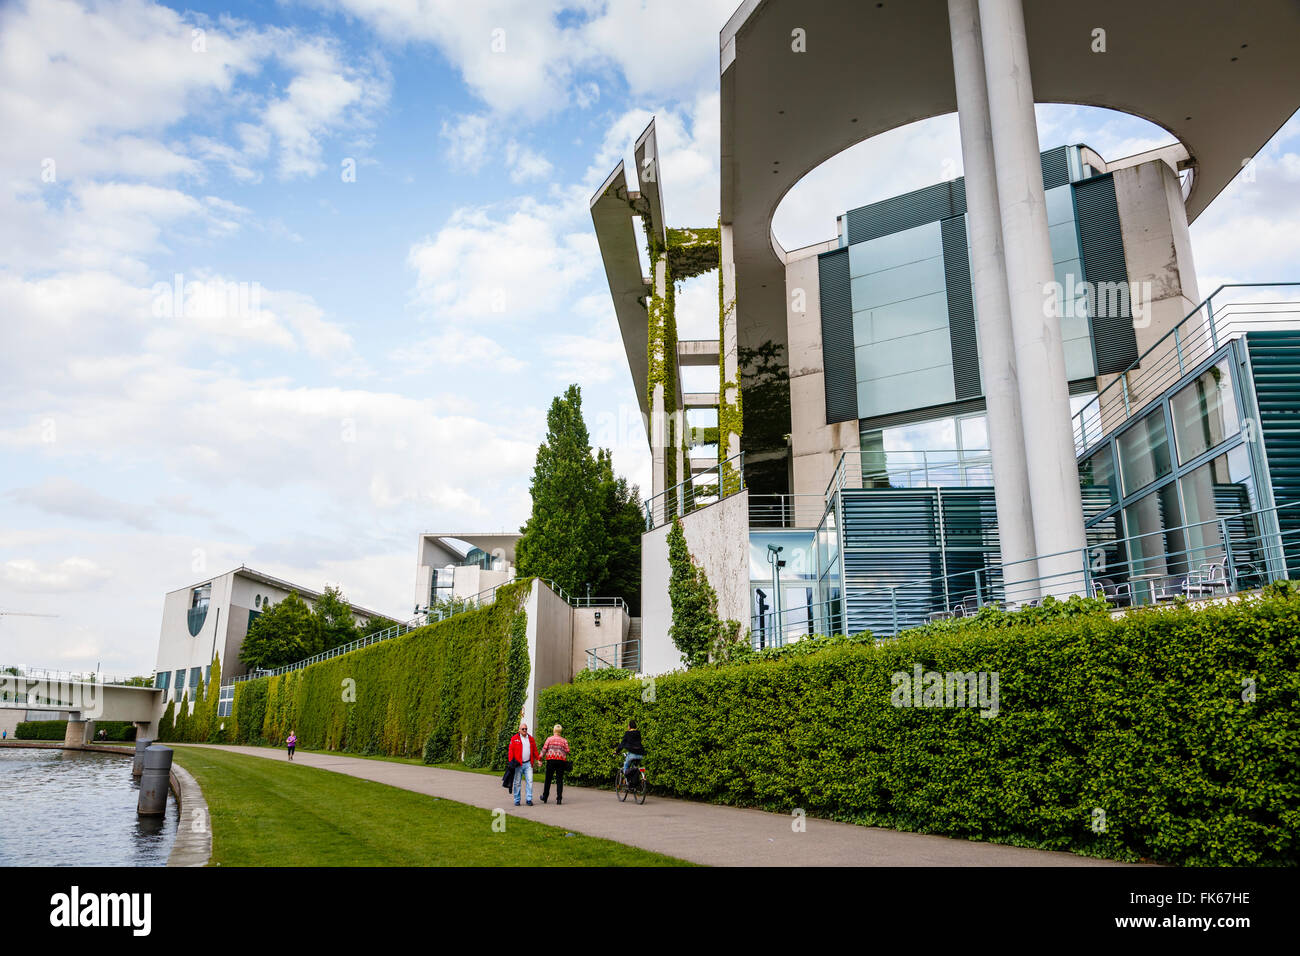 Band des Bundes, the Government Ministries complex, Tiergarten, Berlin, Germany, Europe - Stock Image